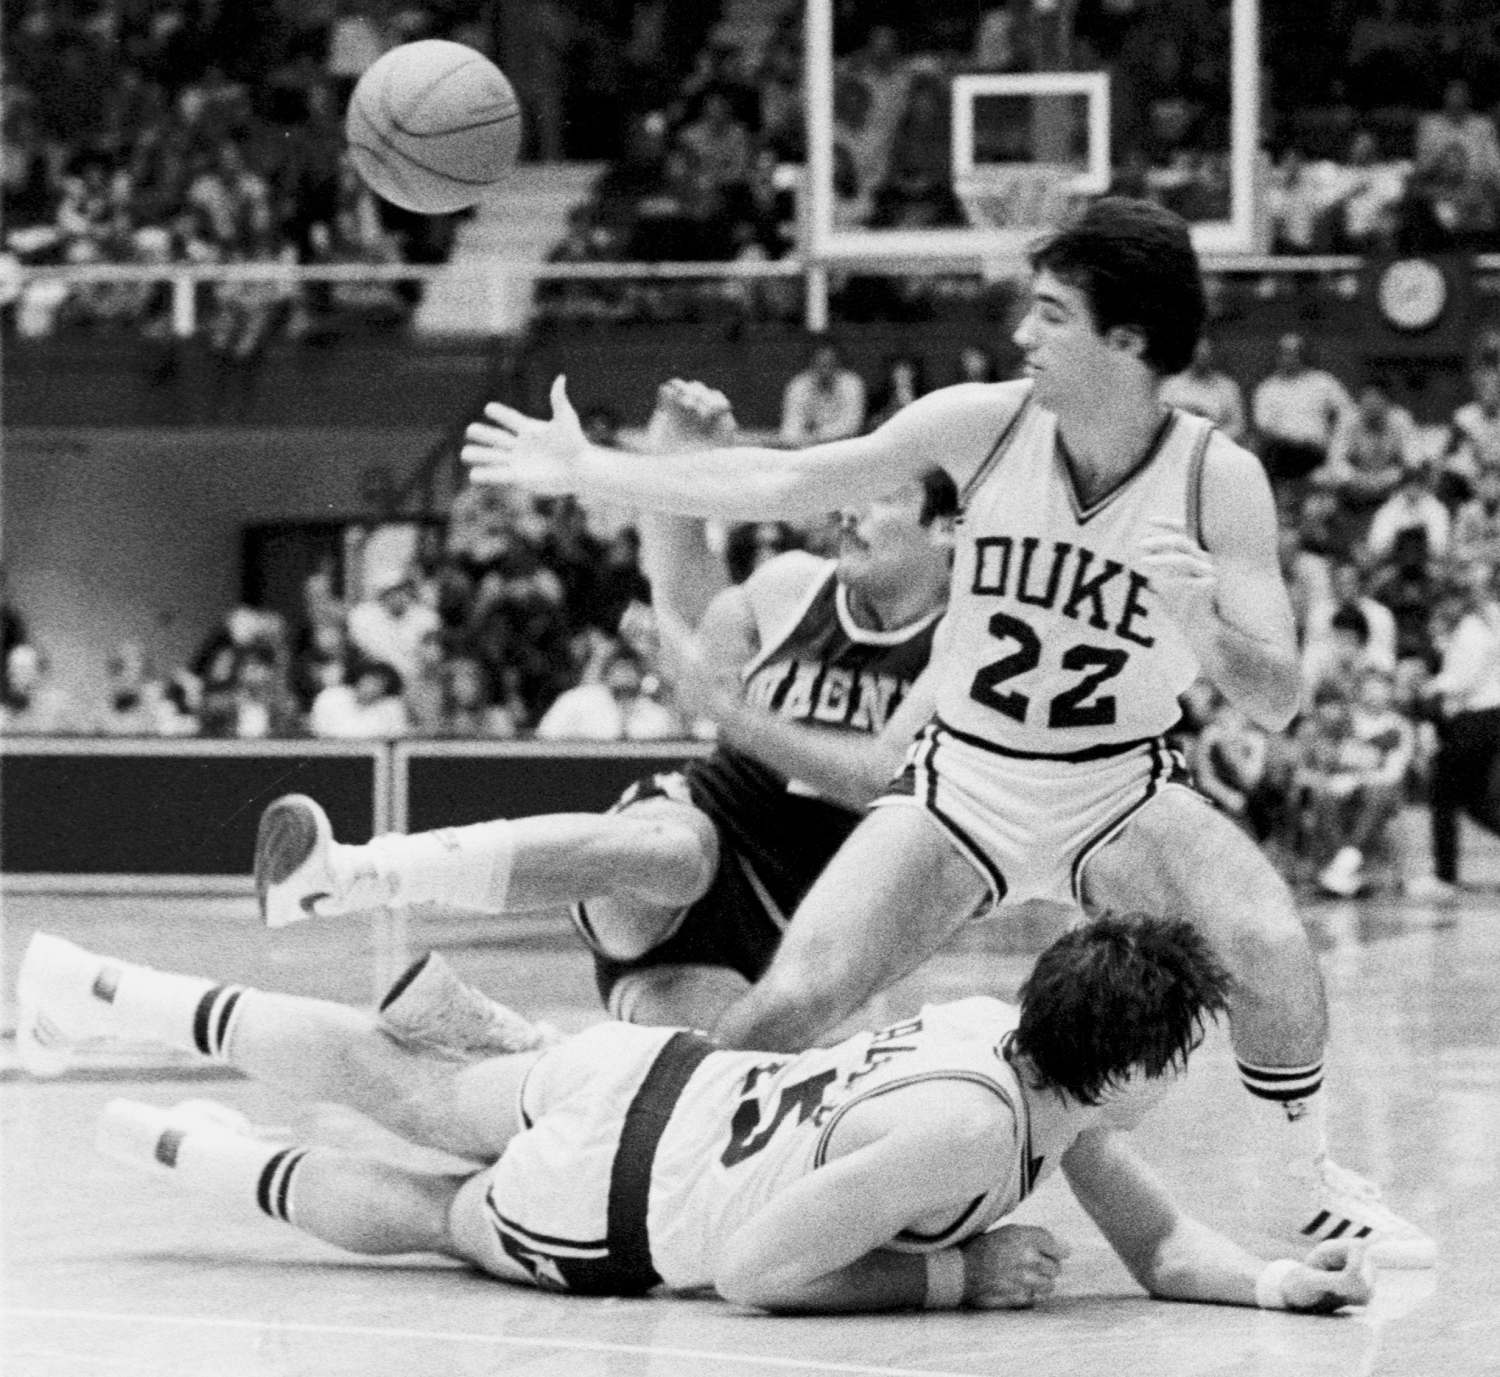 Tom Emma helped lay the groundwork for Duke's college basketball dominance. He, however, sadly fell to his death at only 49 years old.